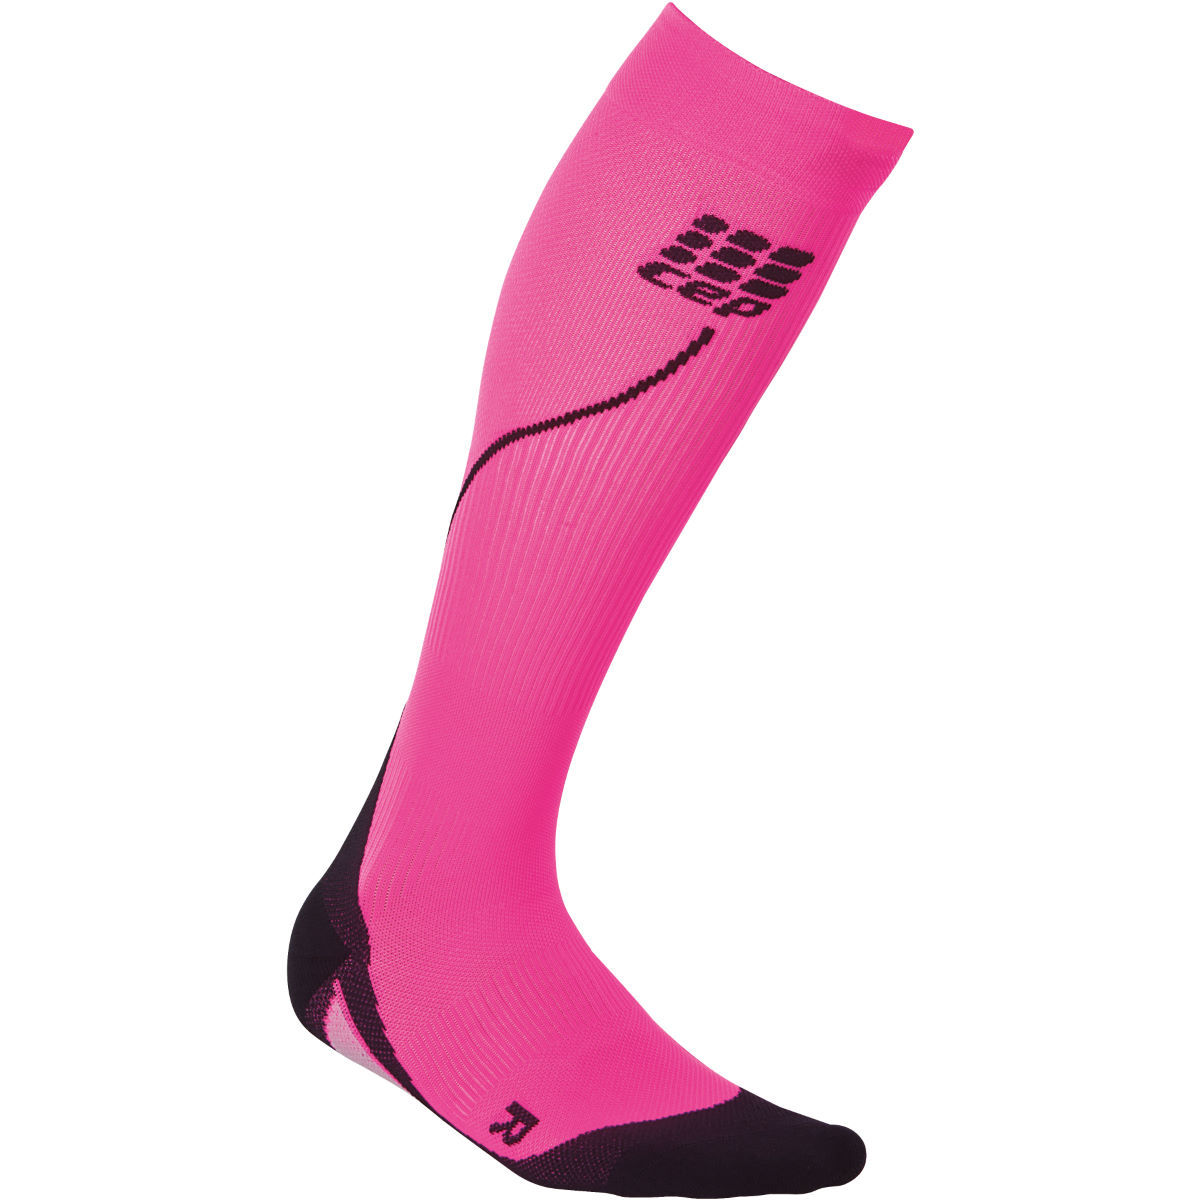 Chaussettes Femme CEP 2.0 (running, compression) - II Pink/Black